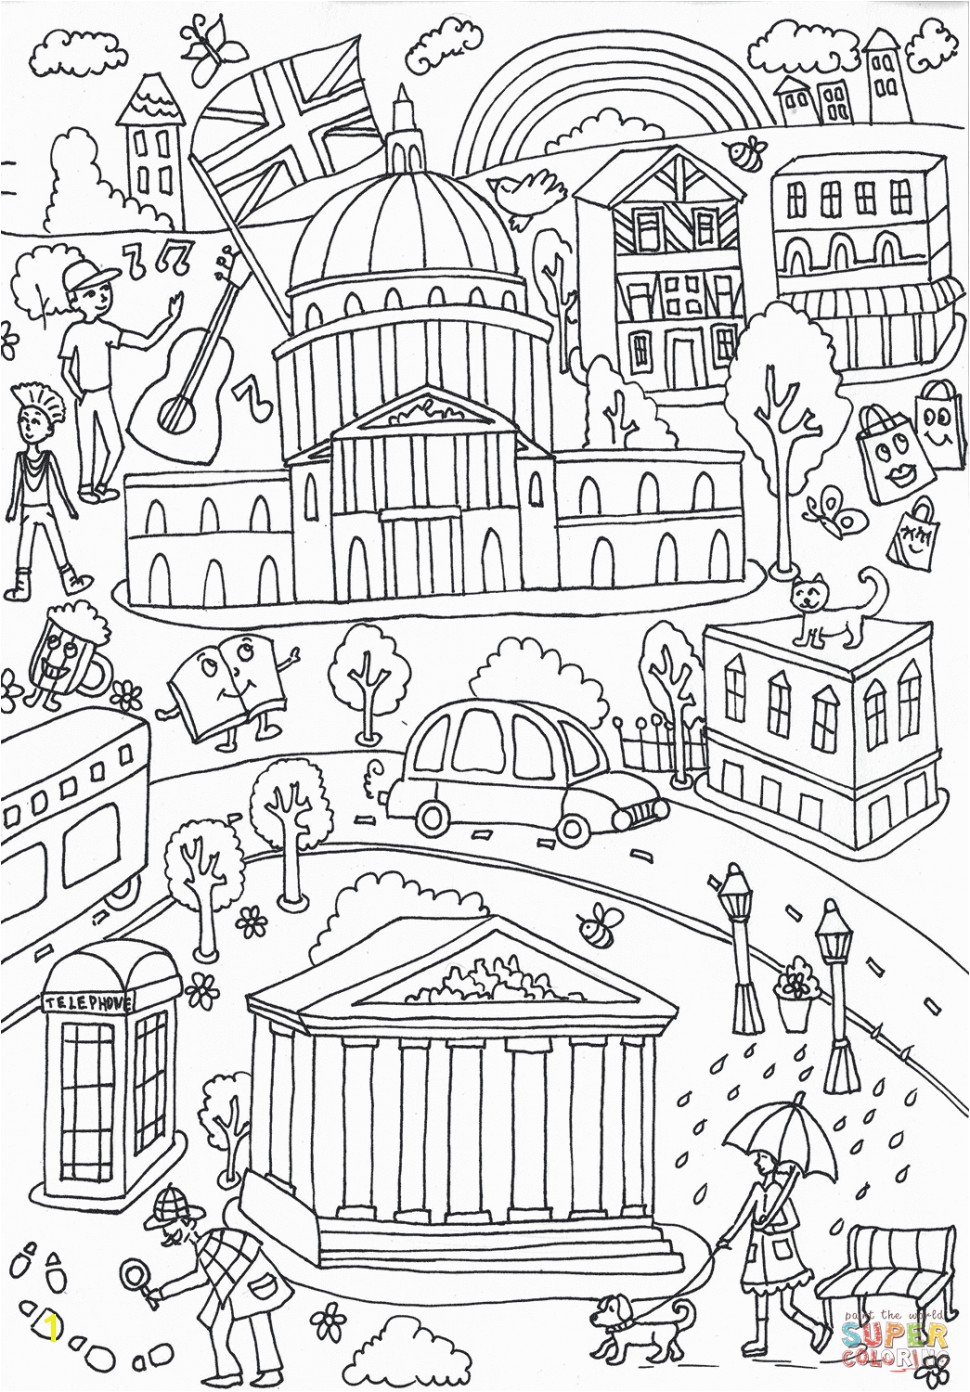 Crammed Central Park Coloring Pages Science Museum Battersea Page For 4 Tgm Sports